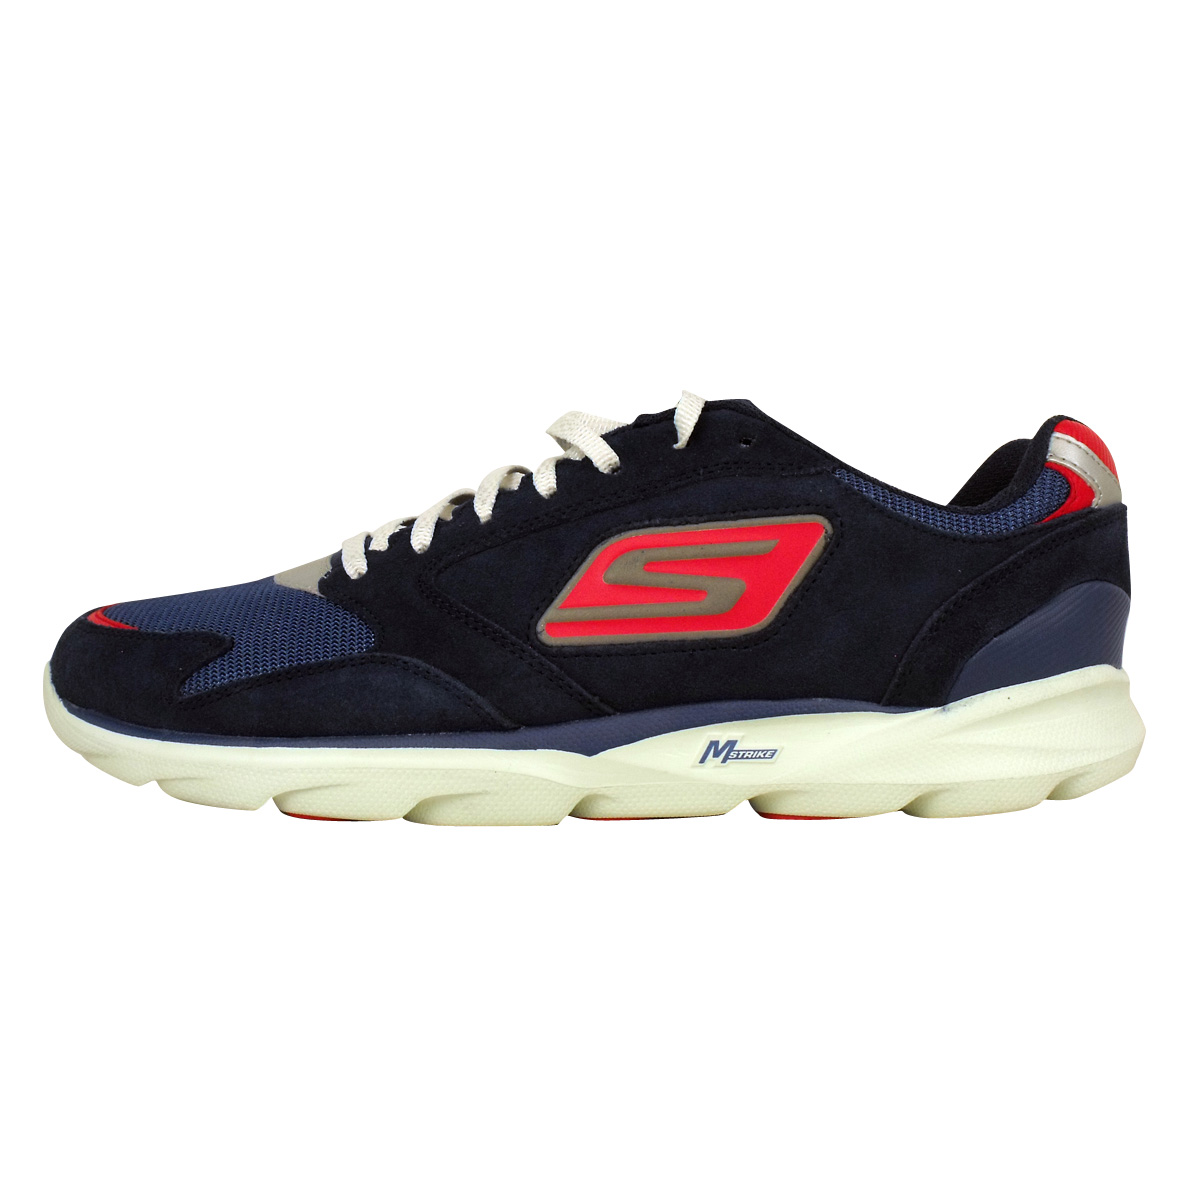 mens skechers go run sonic victory running trainer shoes. Black Bedroom Furniture Sets. Home Design Ideas